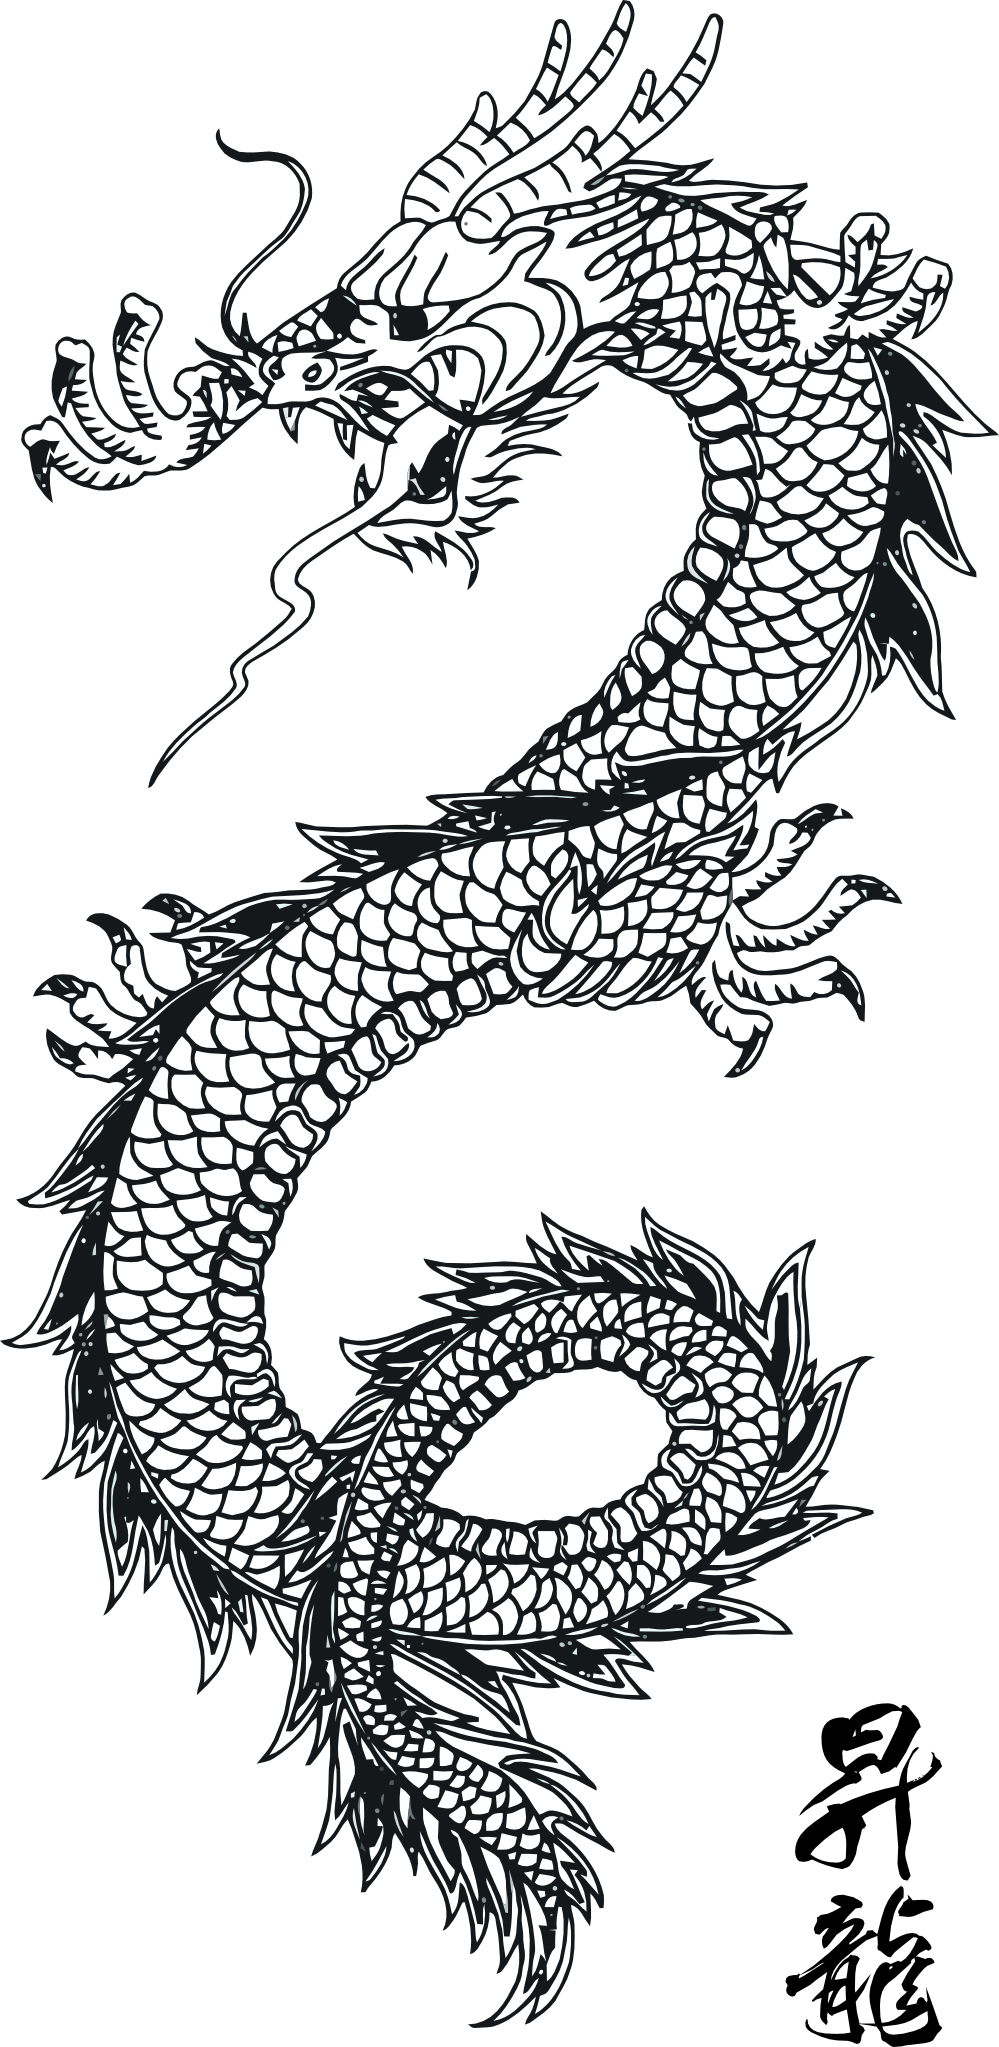 Little Dragon clipart public domain Of Source: I wikia from